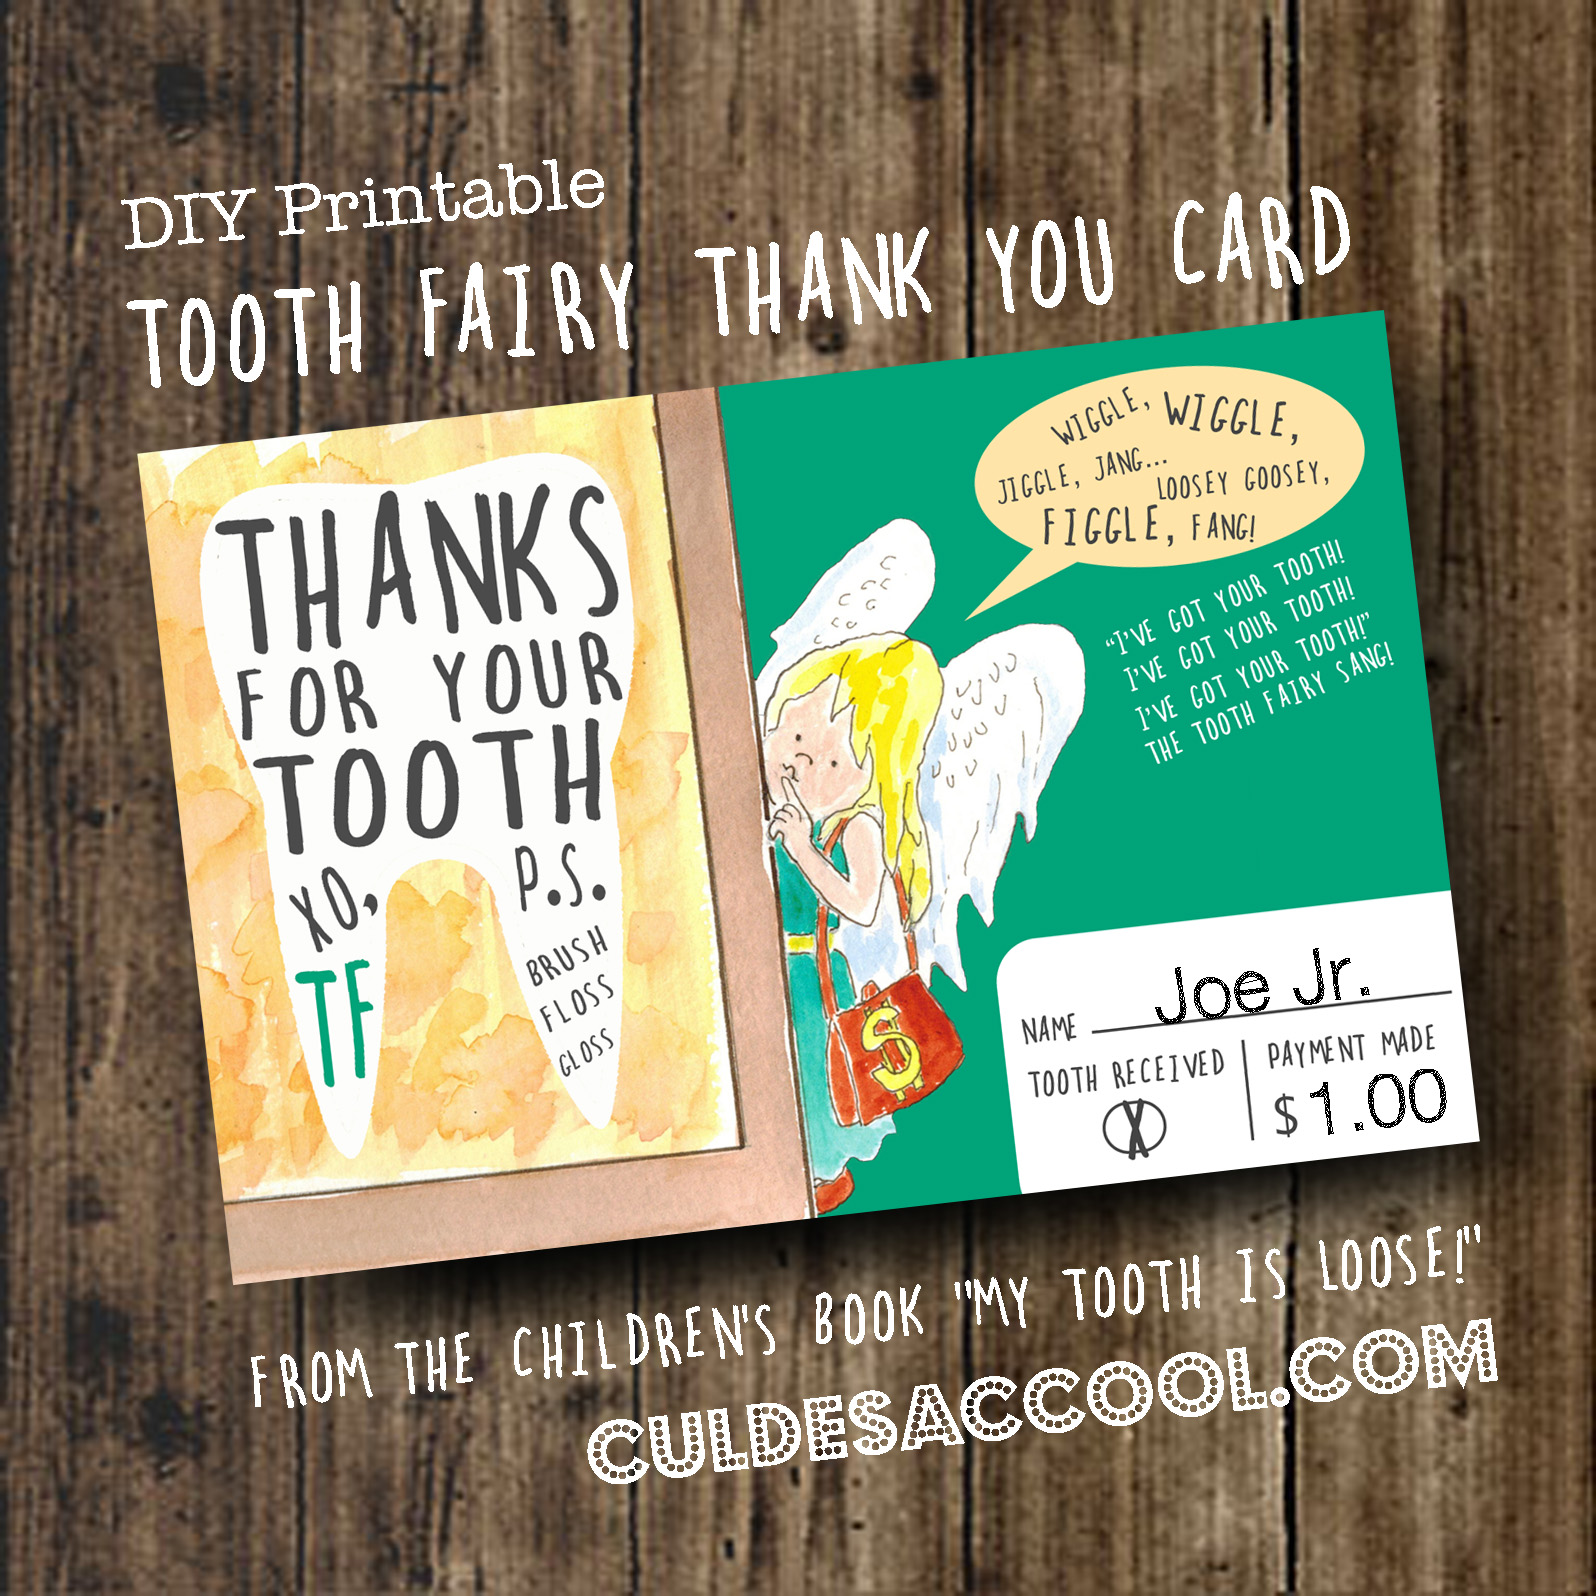 Diy Printable Tooth Fairy Thank You Card From The Children S Book